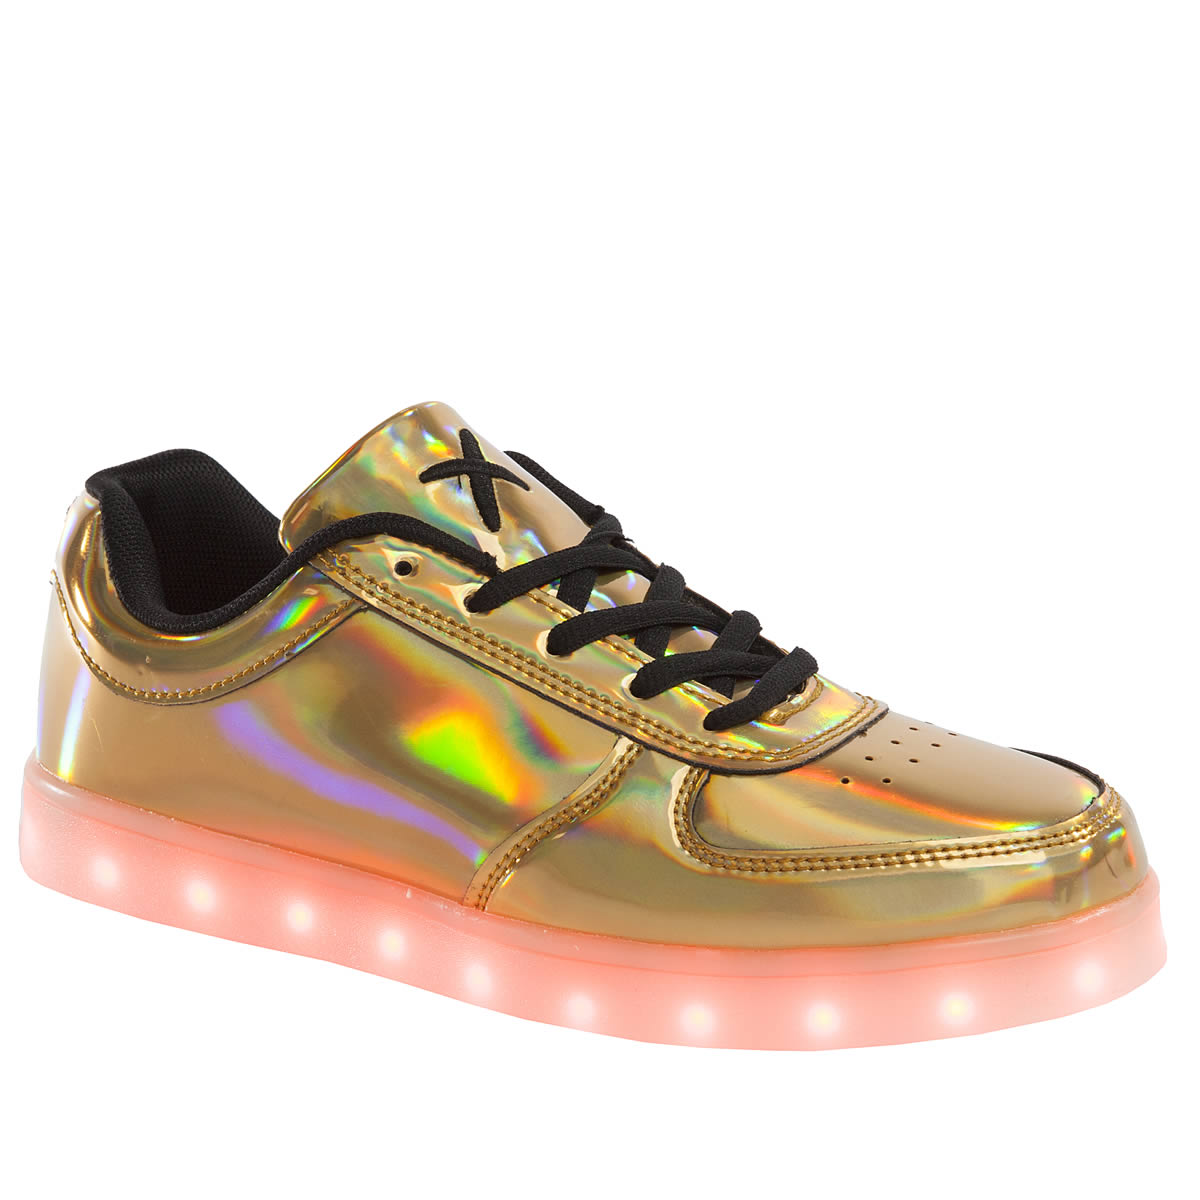 wize & ope Wize & Ope Gold Pop Led Trainers